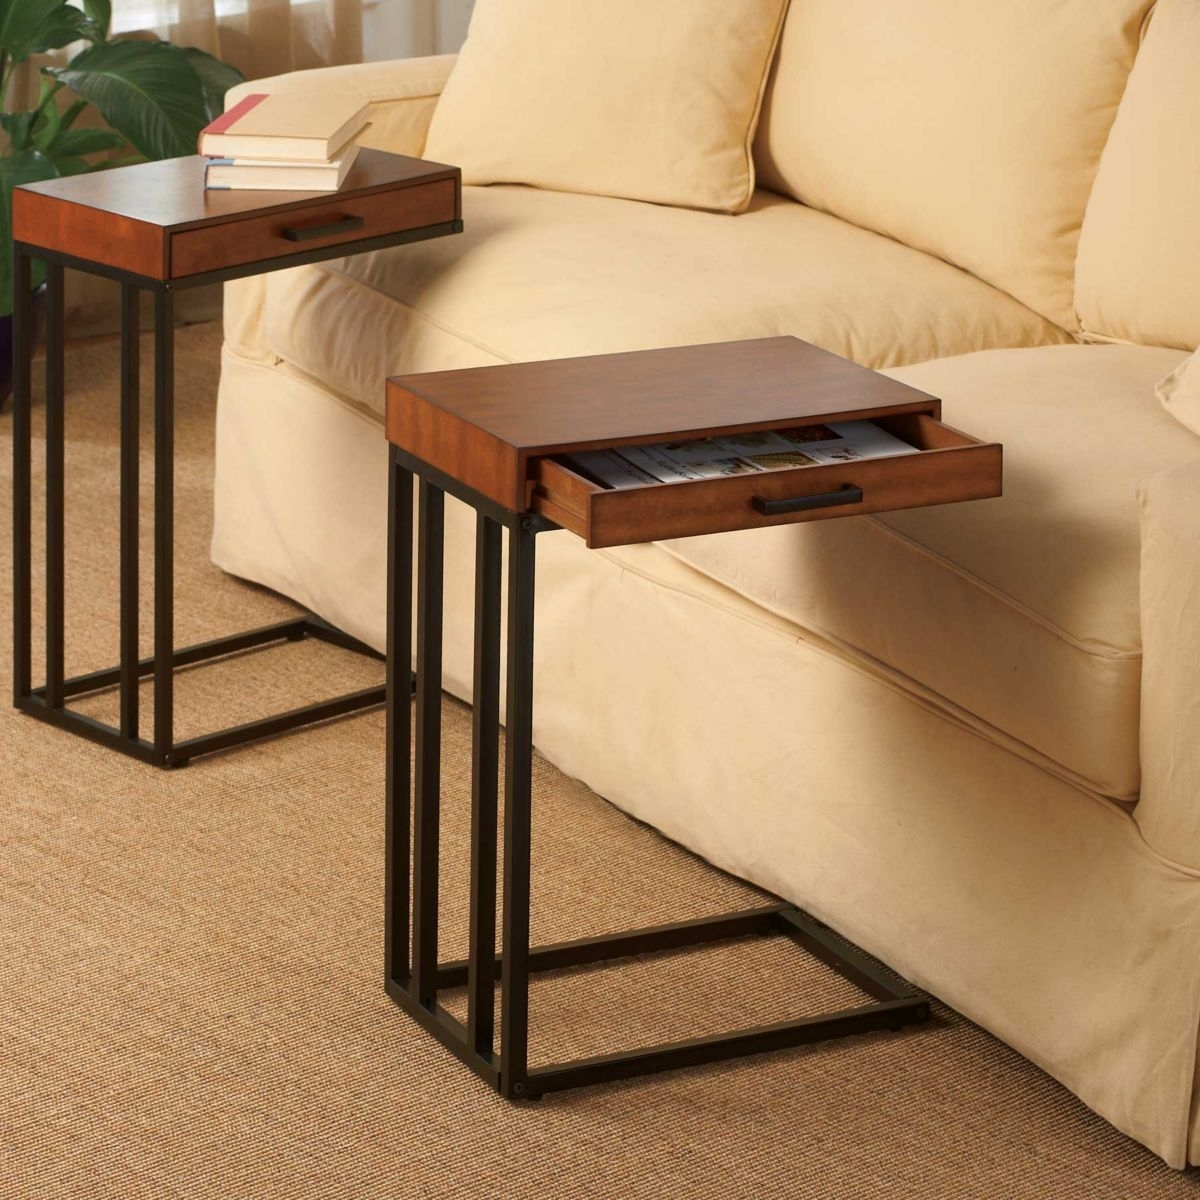 Picture of: Laptop Table For Couch You Ll Love In 2020 Visualhunt